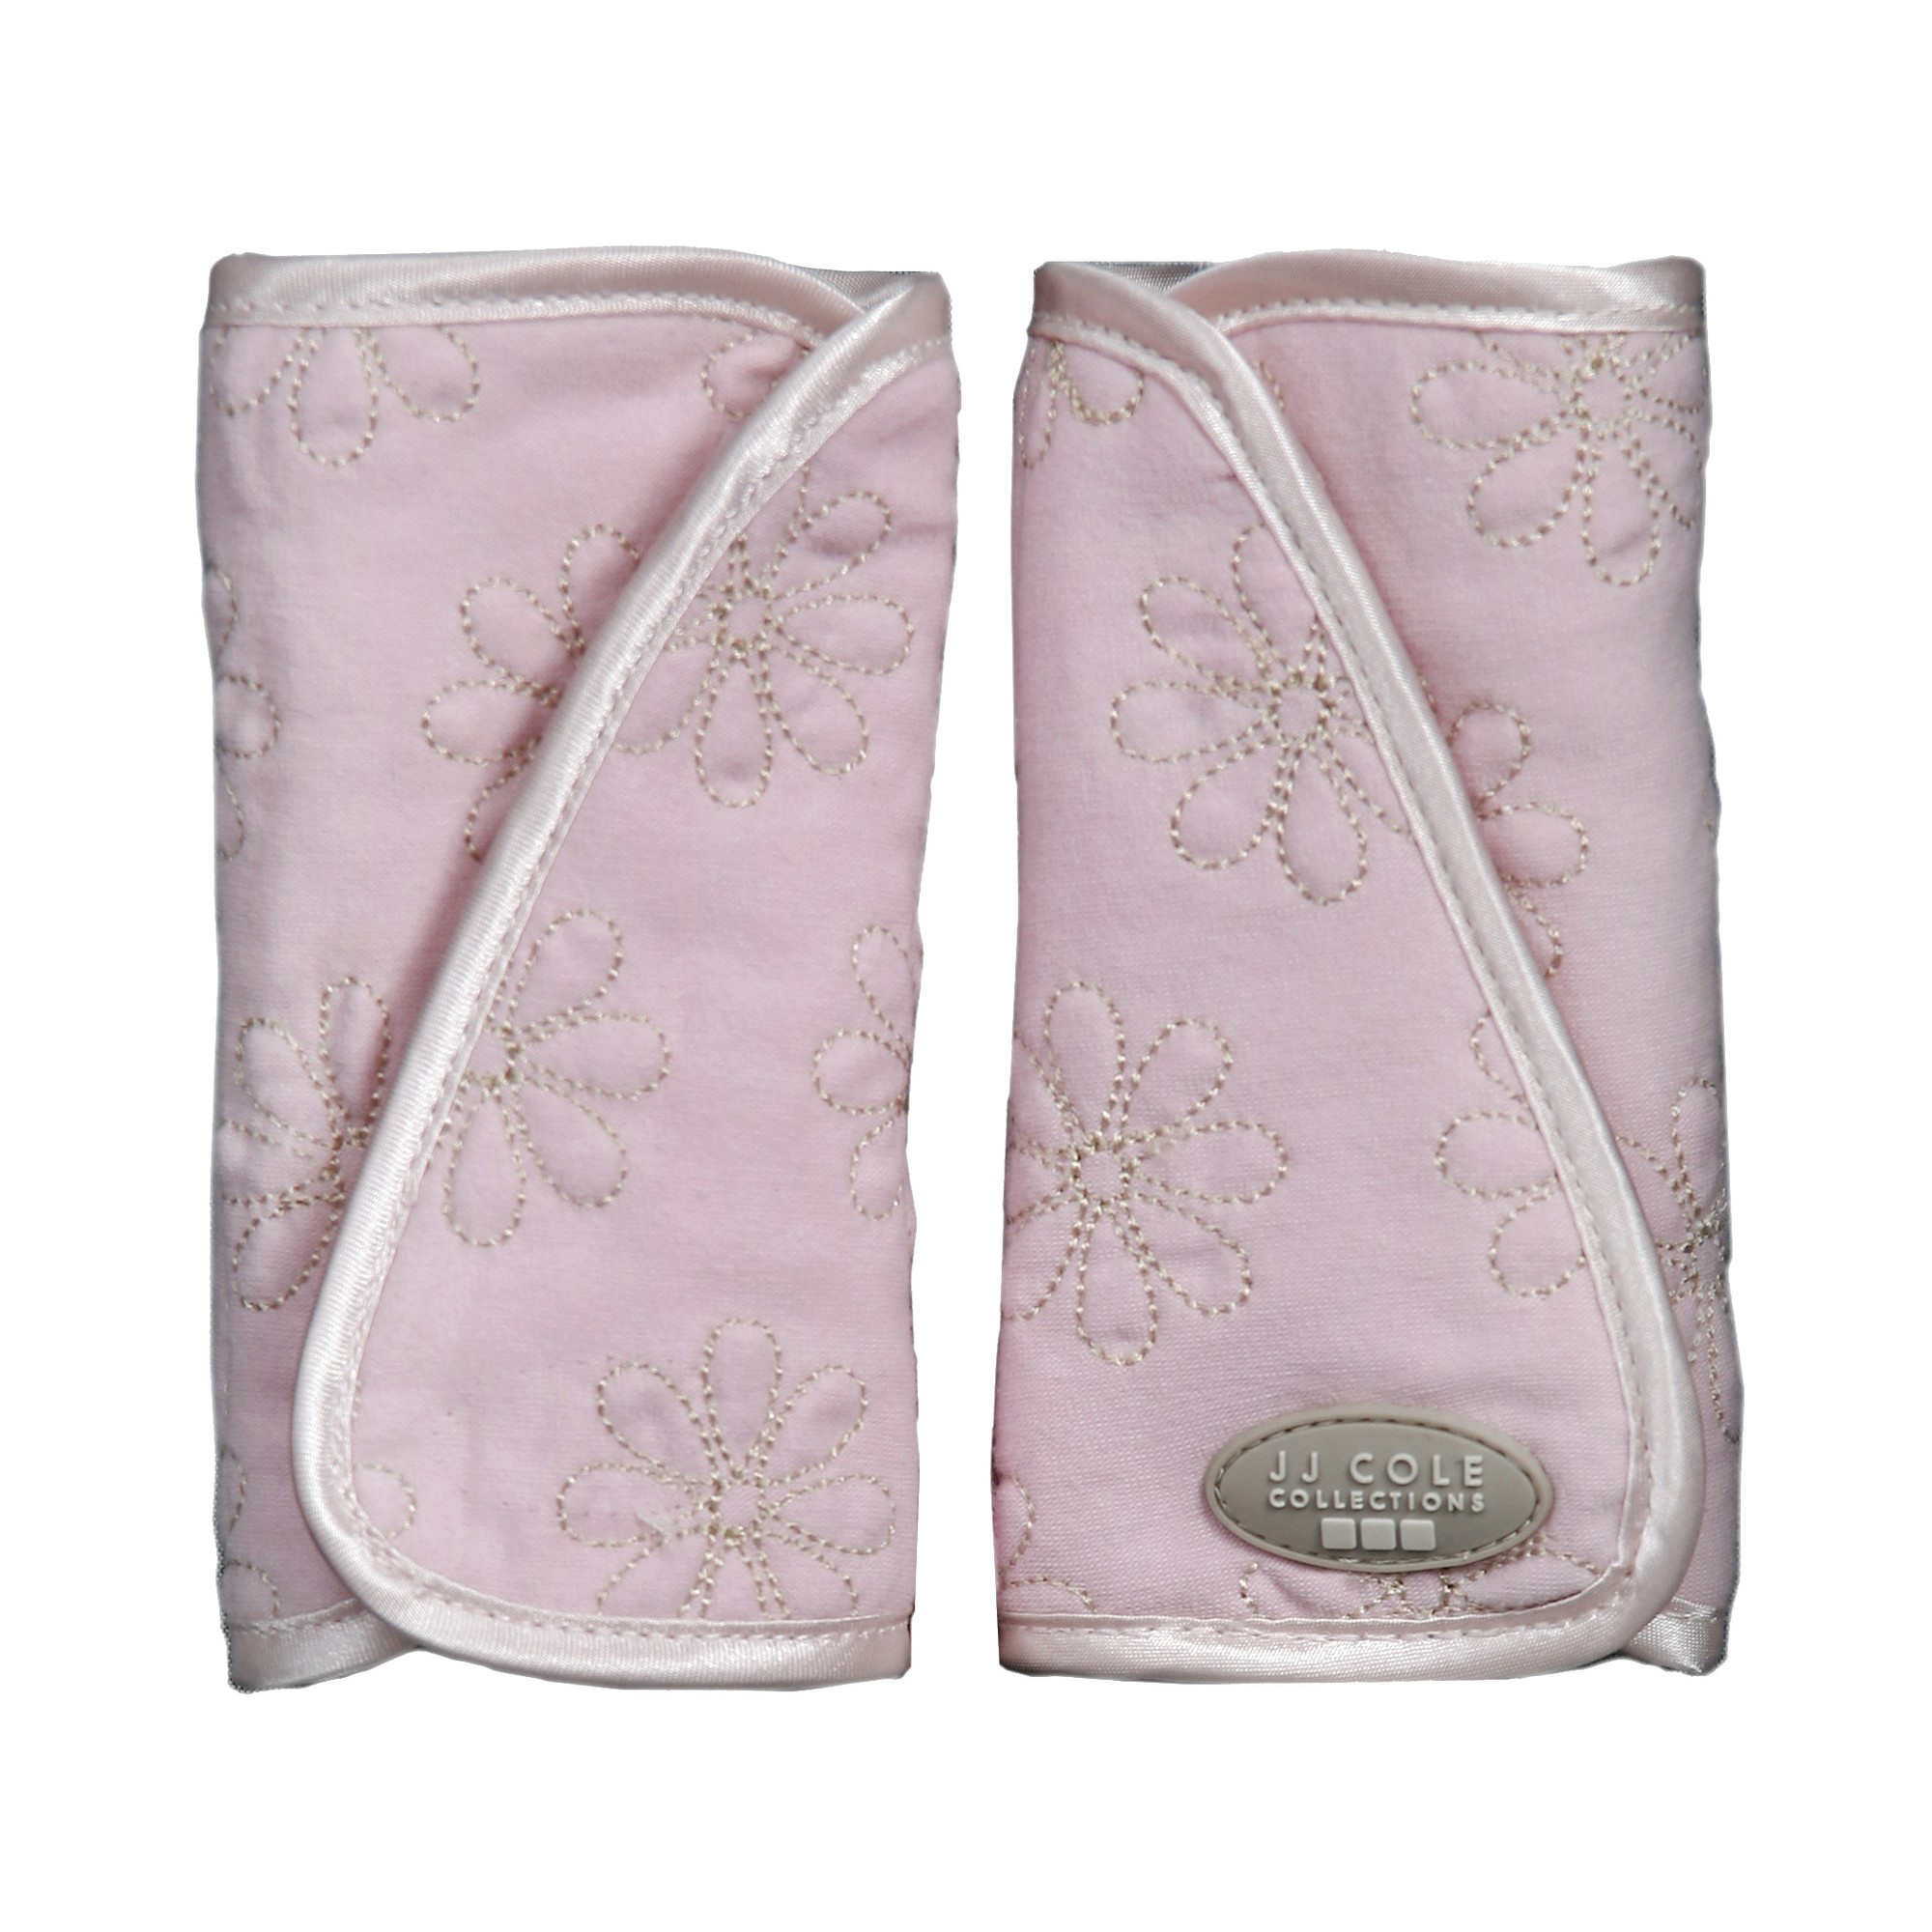 JJ COLE Strap Covers - Pink